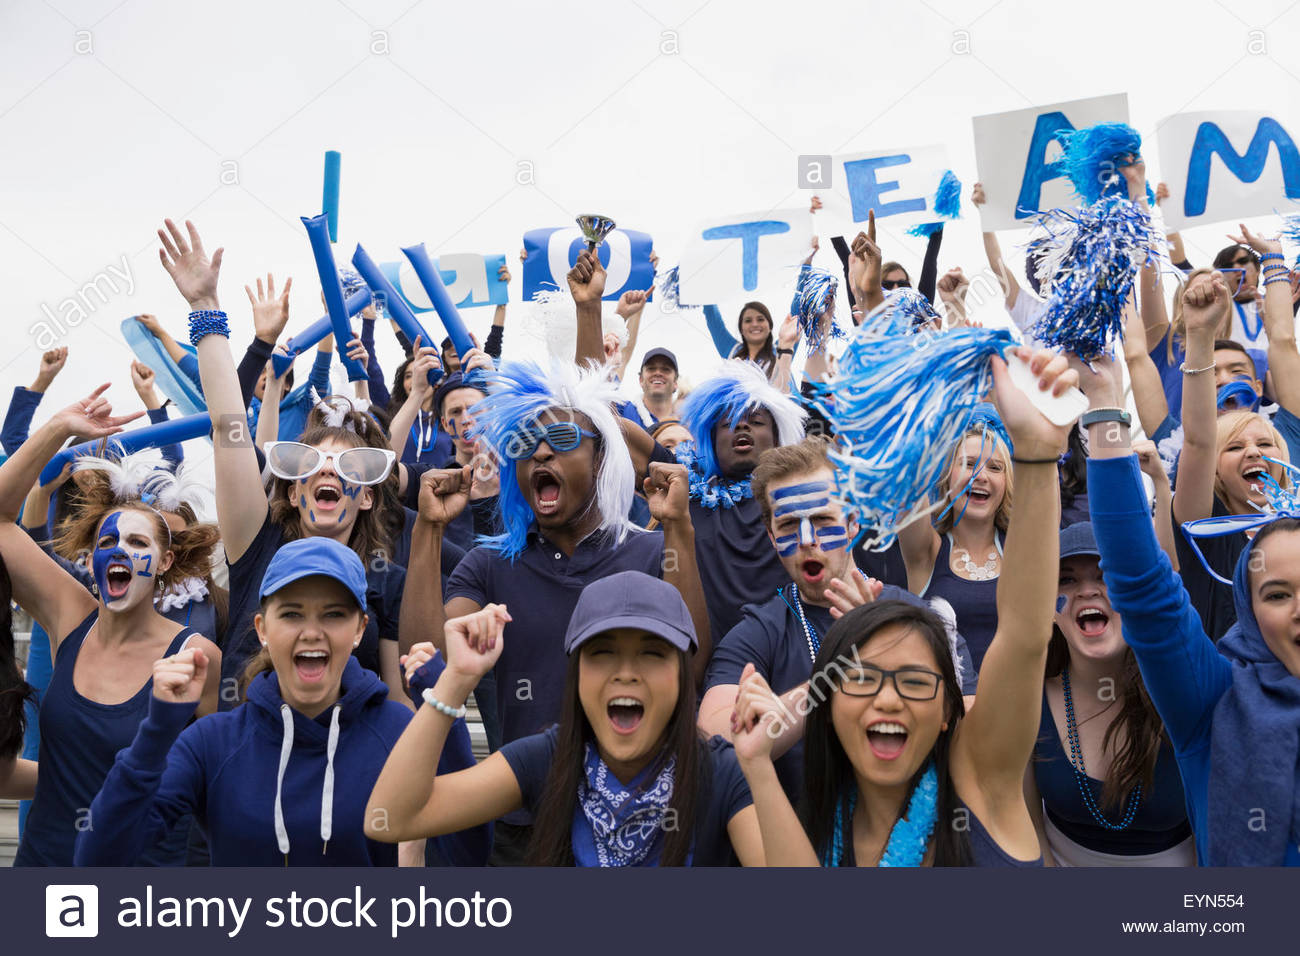 Portrait enthusiastic crowd in blue cheering sports event - Stock Image